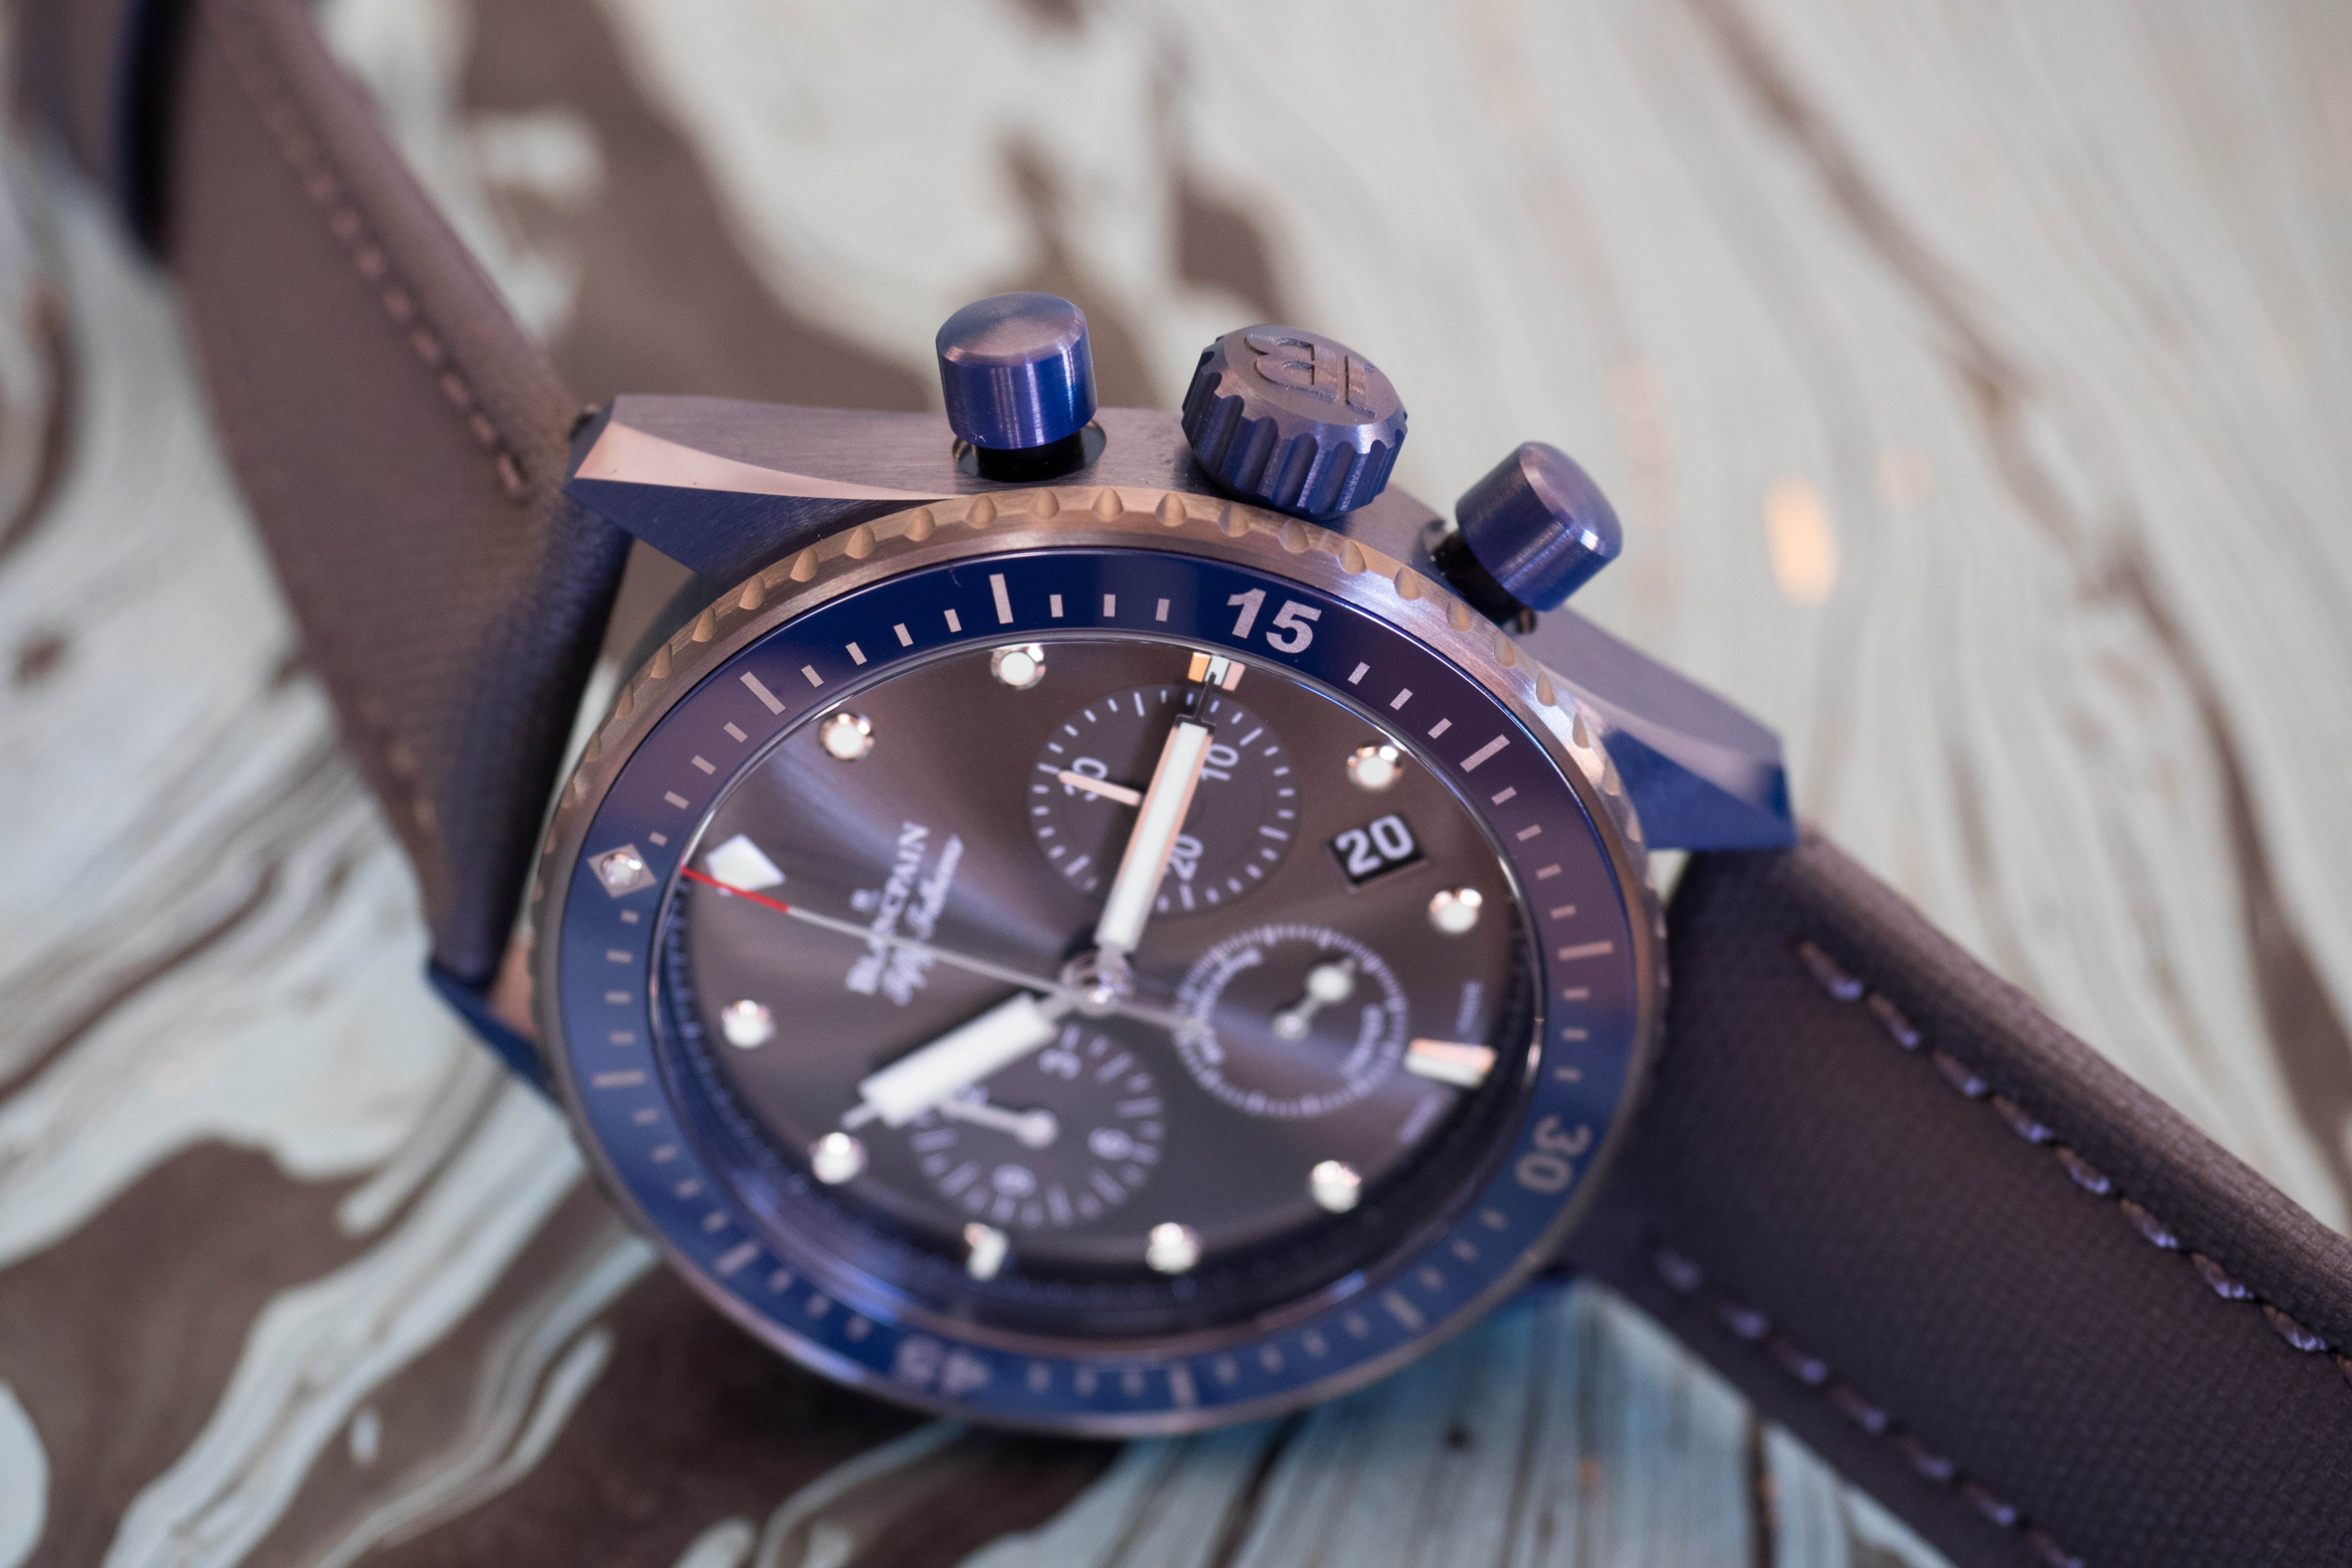 Fifty Fathoms Bathyscaphe Flyback Chronograph Blancpain Ocean Commitment II case flank Hands-On: The Fifty Fathoms Bathyscaphe Flyback Chronograph Blancpain Ocean Commitment II Hands-On: The Fifty Fathoms Bathyscaphe Flyback Chronograph Blancpain Ocean Commitment II PB040017